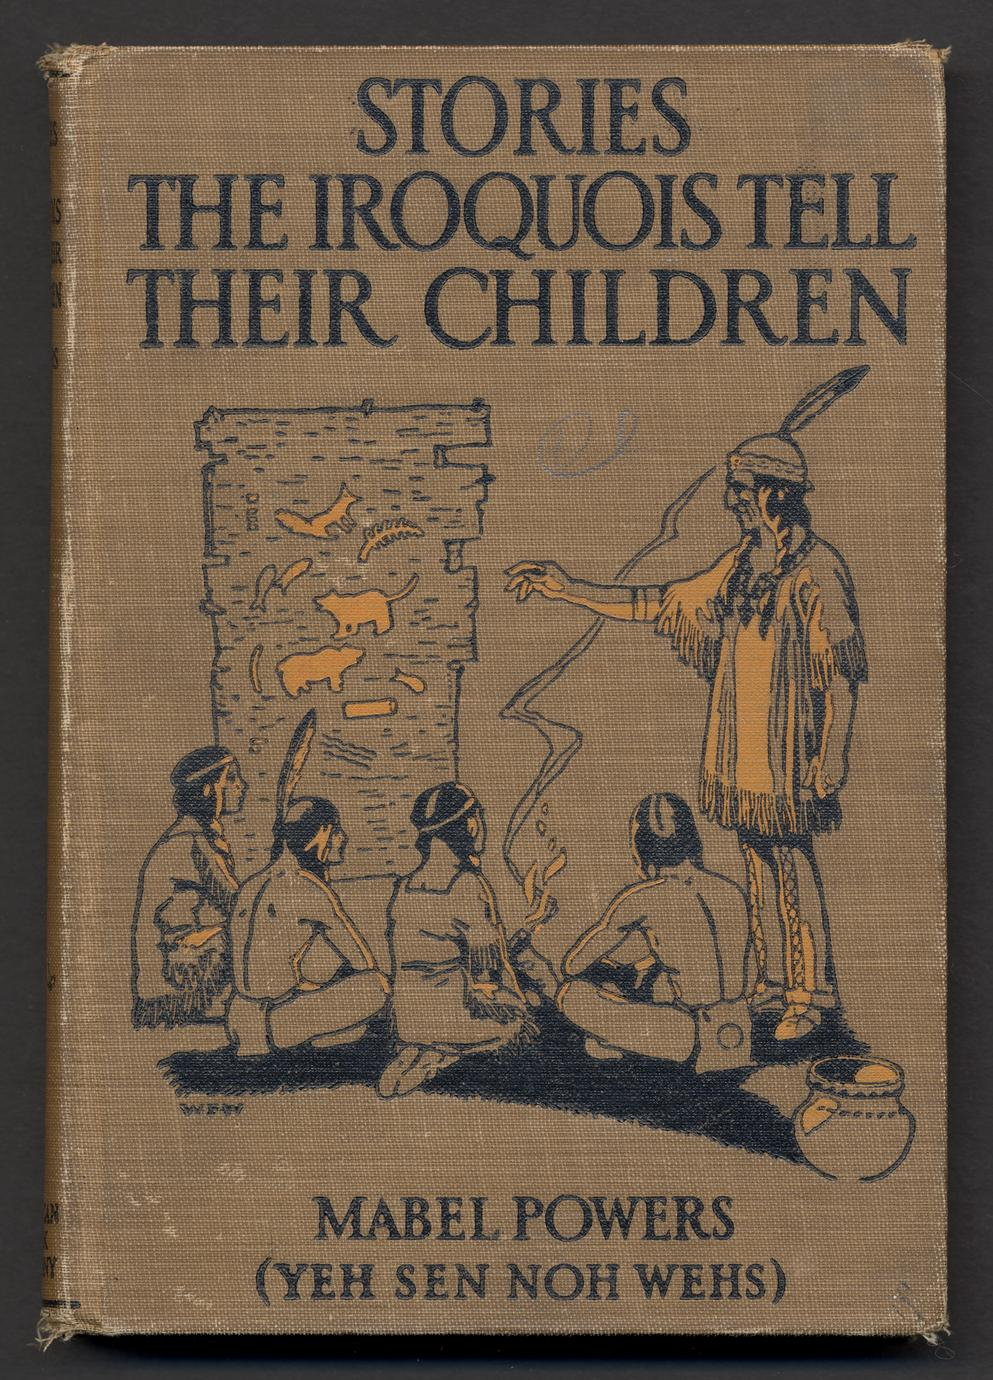 Stories the Iroquois tell their children (1 of 4)